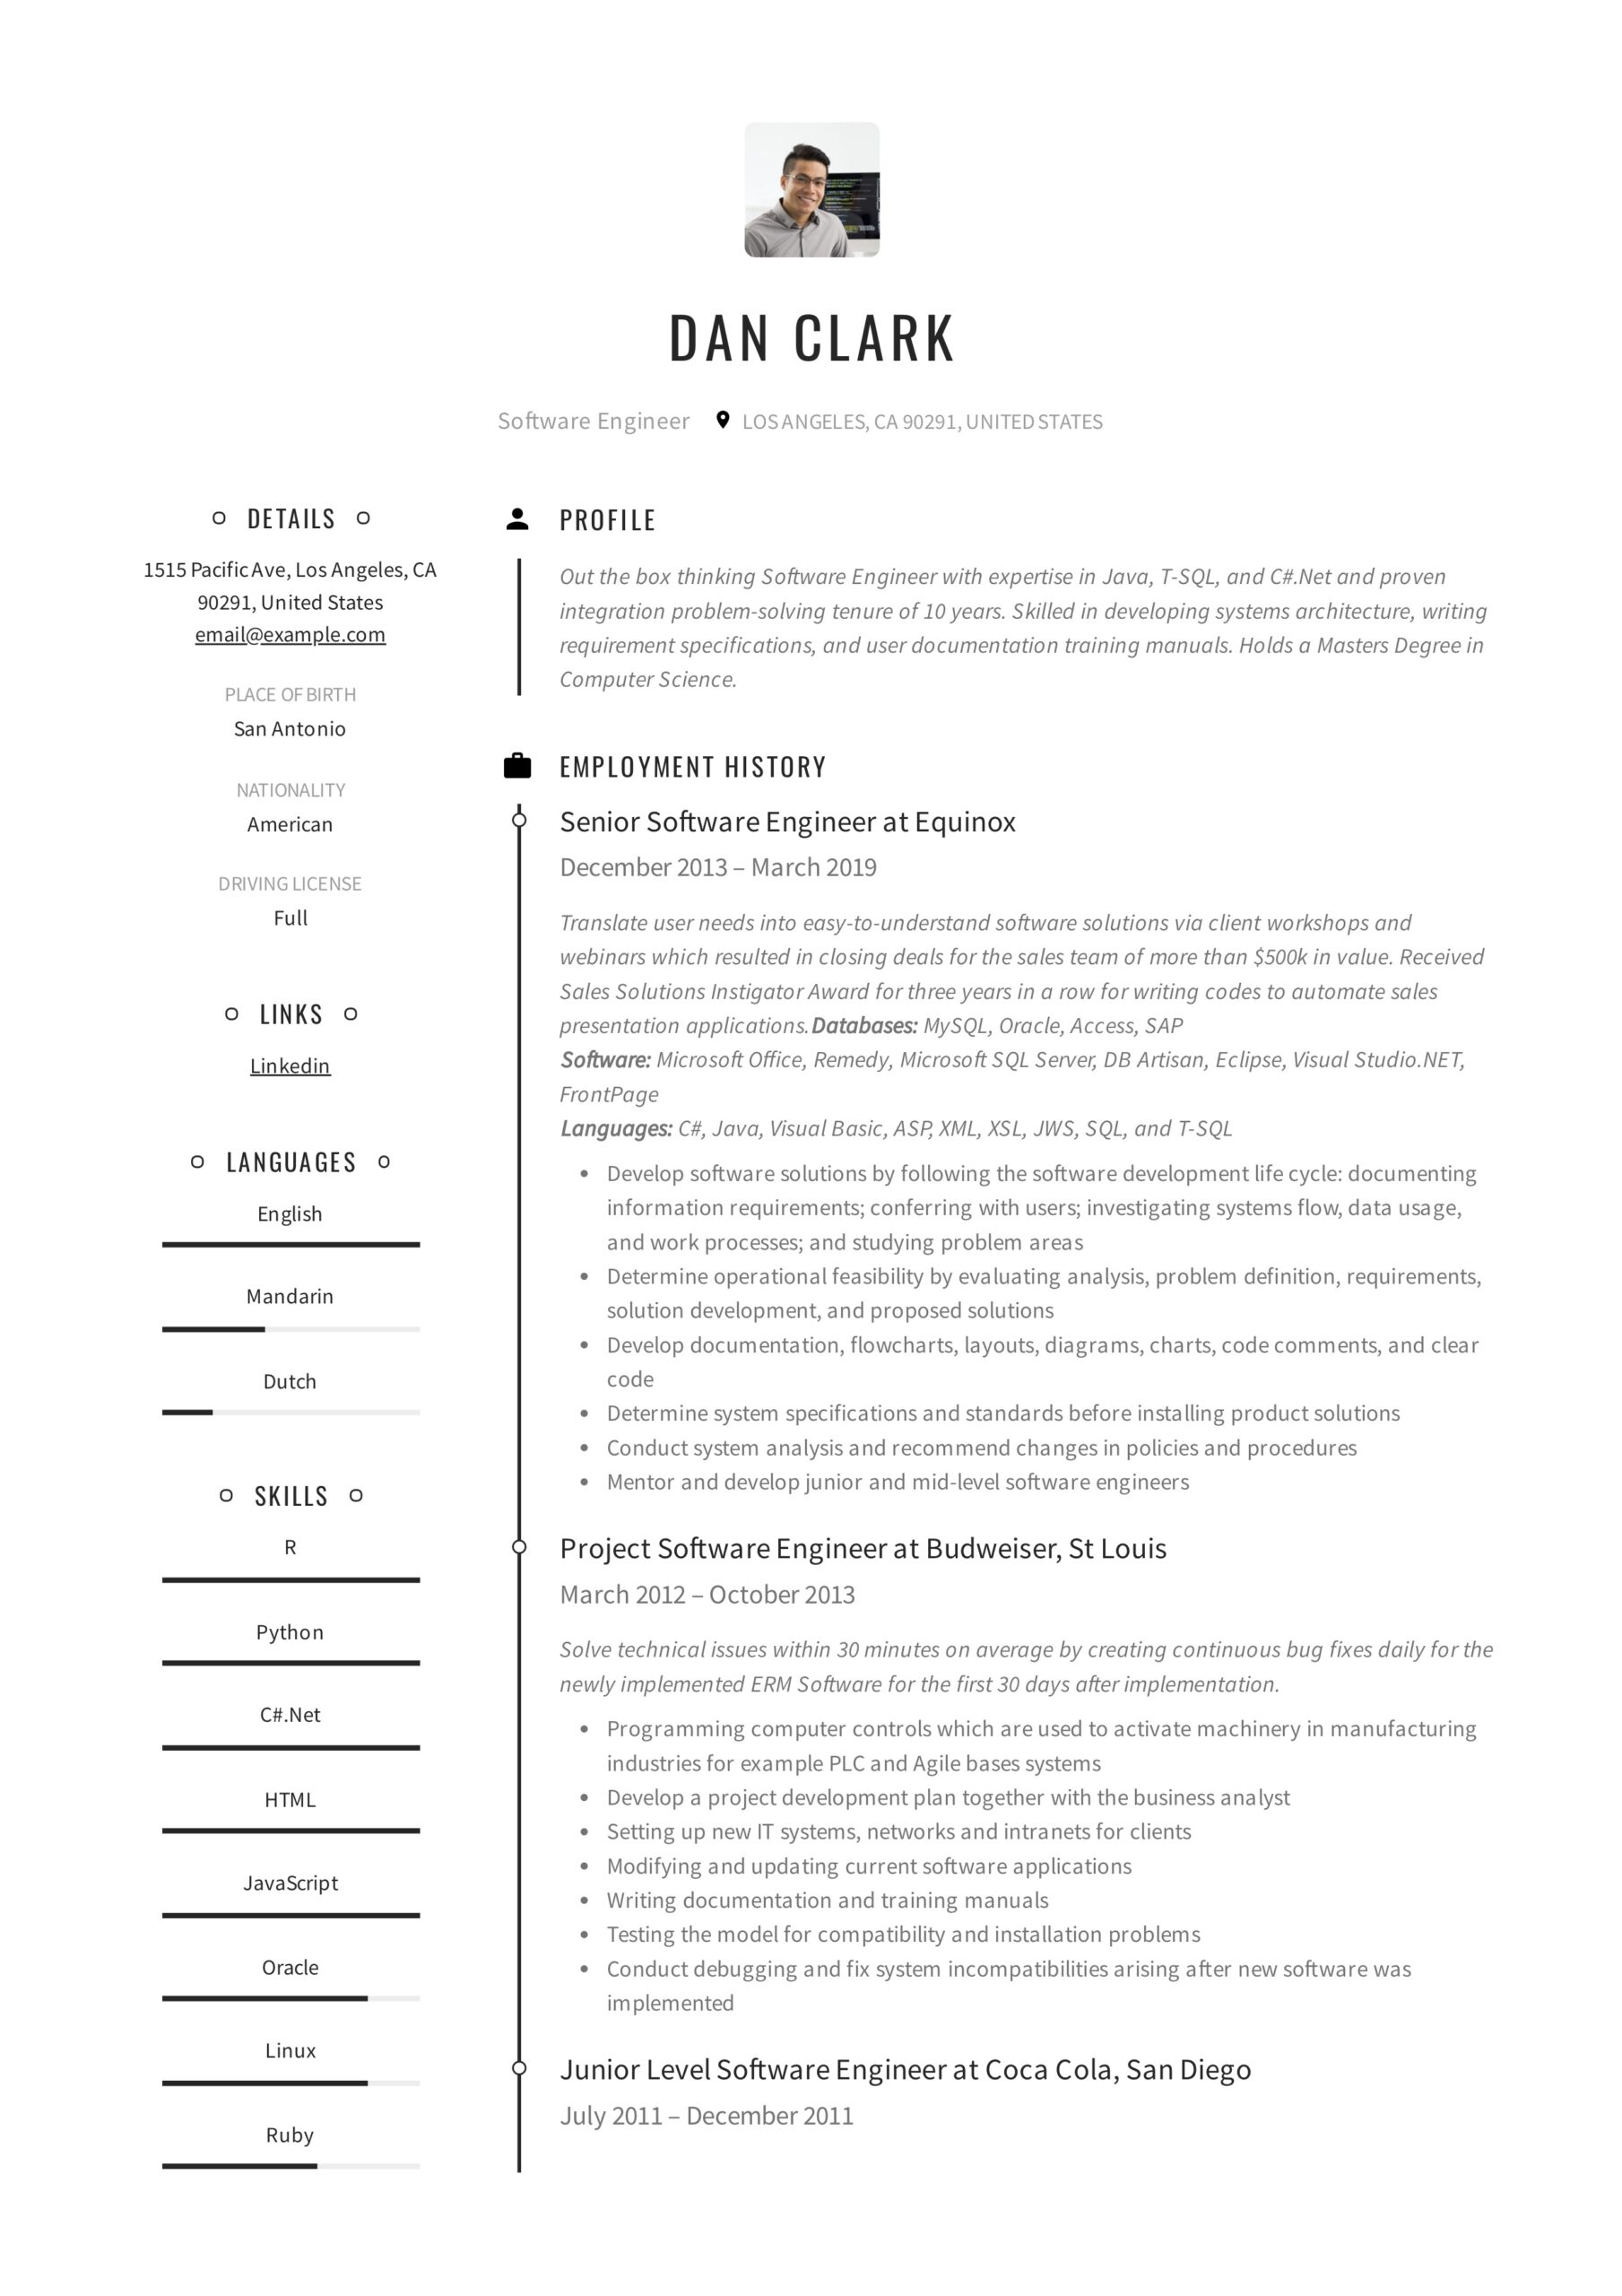 resume templates pdf word free downloads and guides create dan software engineer guaynabo Resume Create Resume Free Pdf